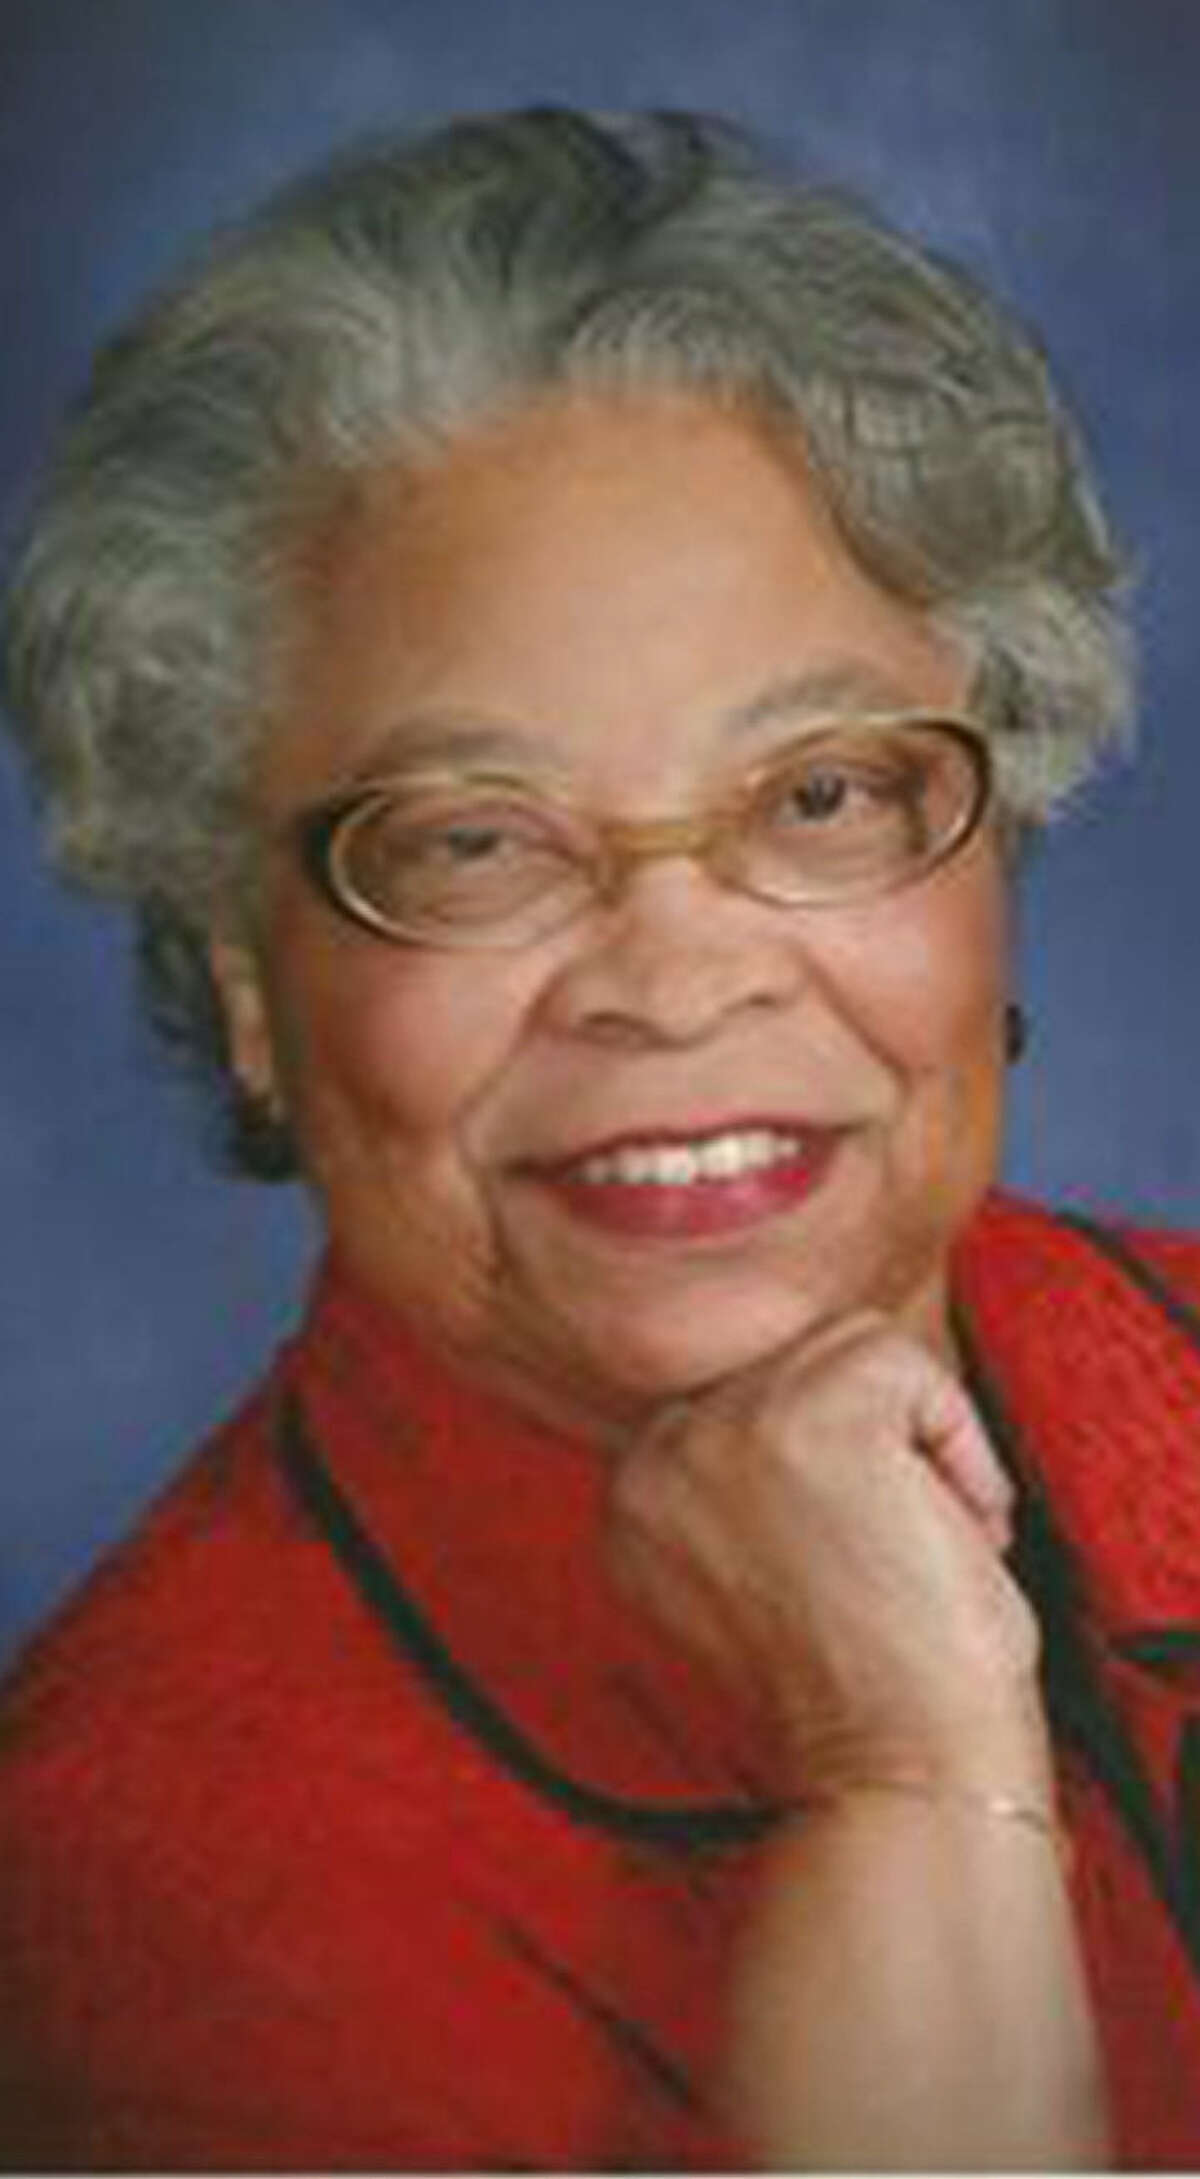 Joe Ann Brown grew up during Jim Crow days. She would go on to break barriers and serve her church and community.